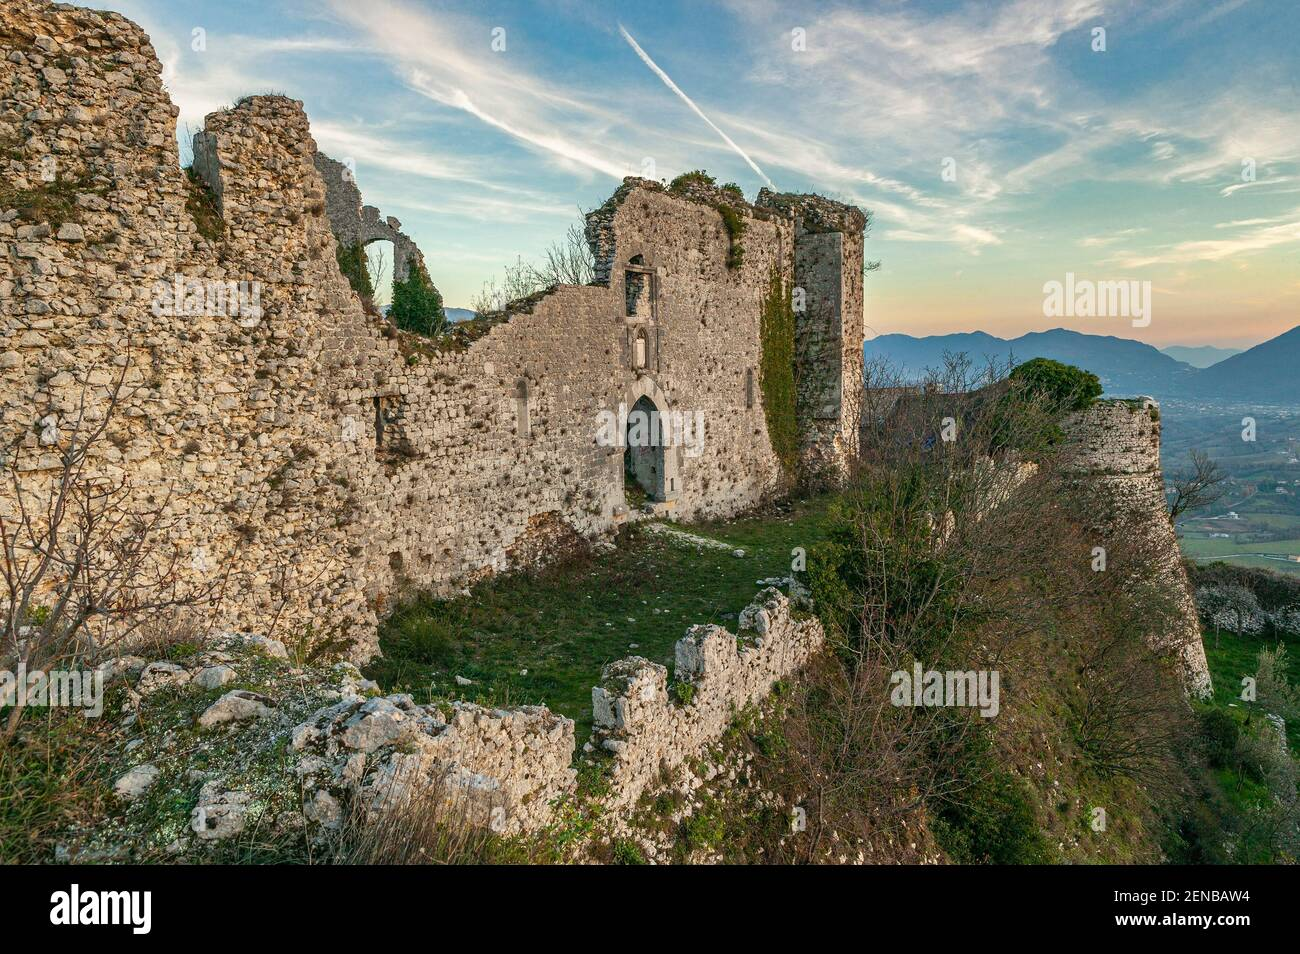 The ruins of the Cantelmi castle in the medieval town of Alvito. Alvito, province of Frosinone, Lazio, Italy, Europe Stock Photo